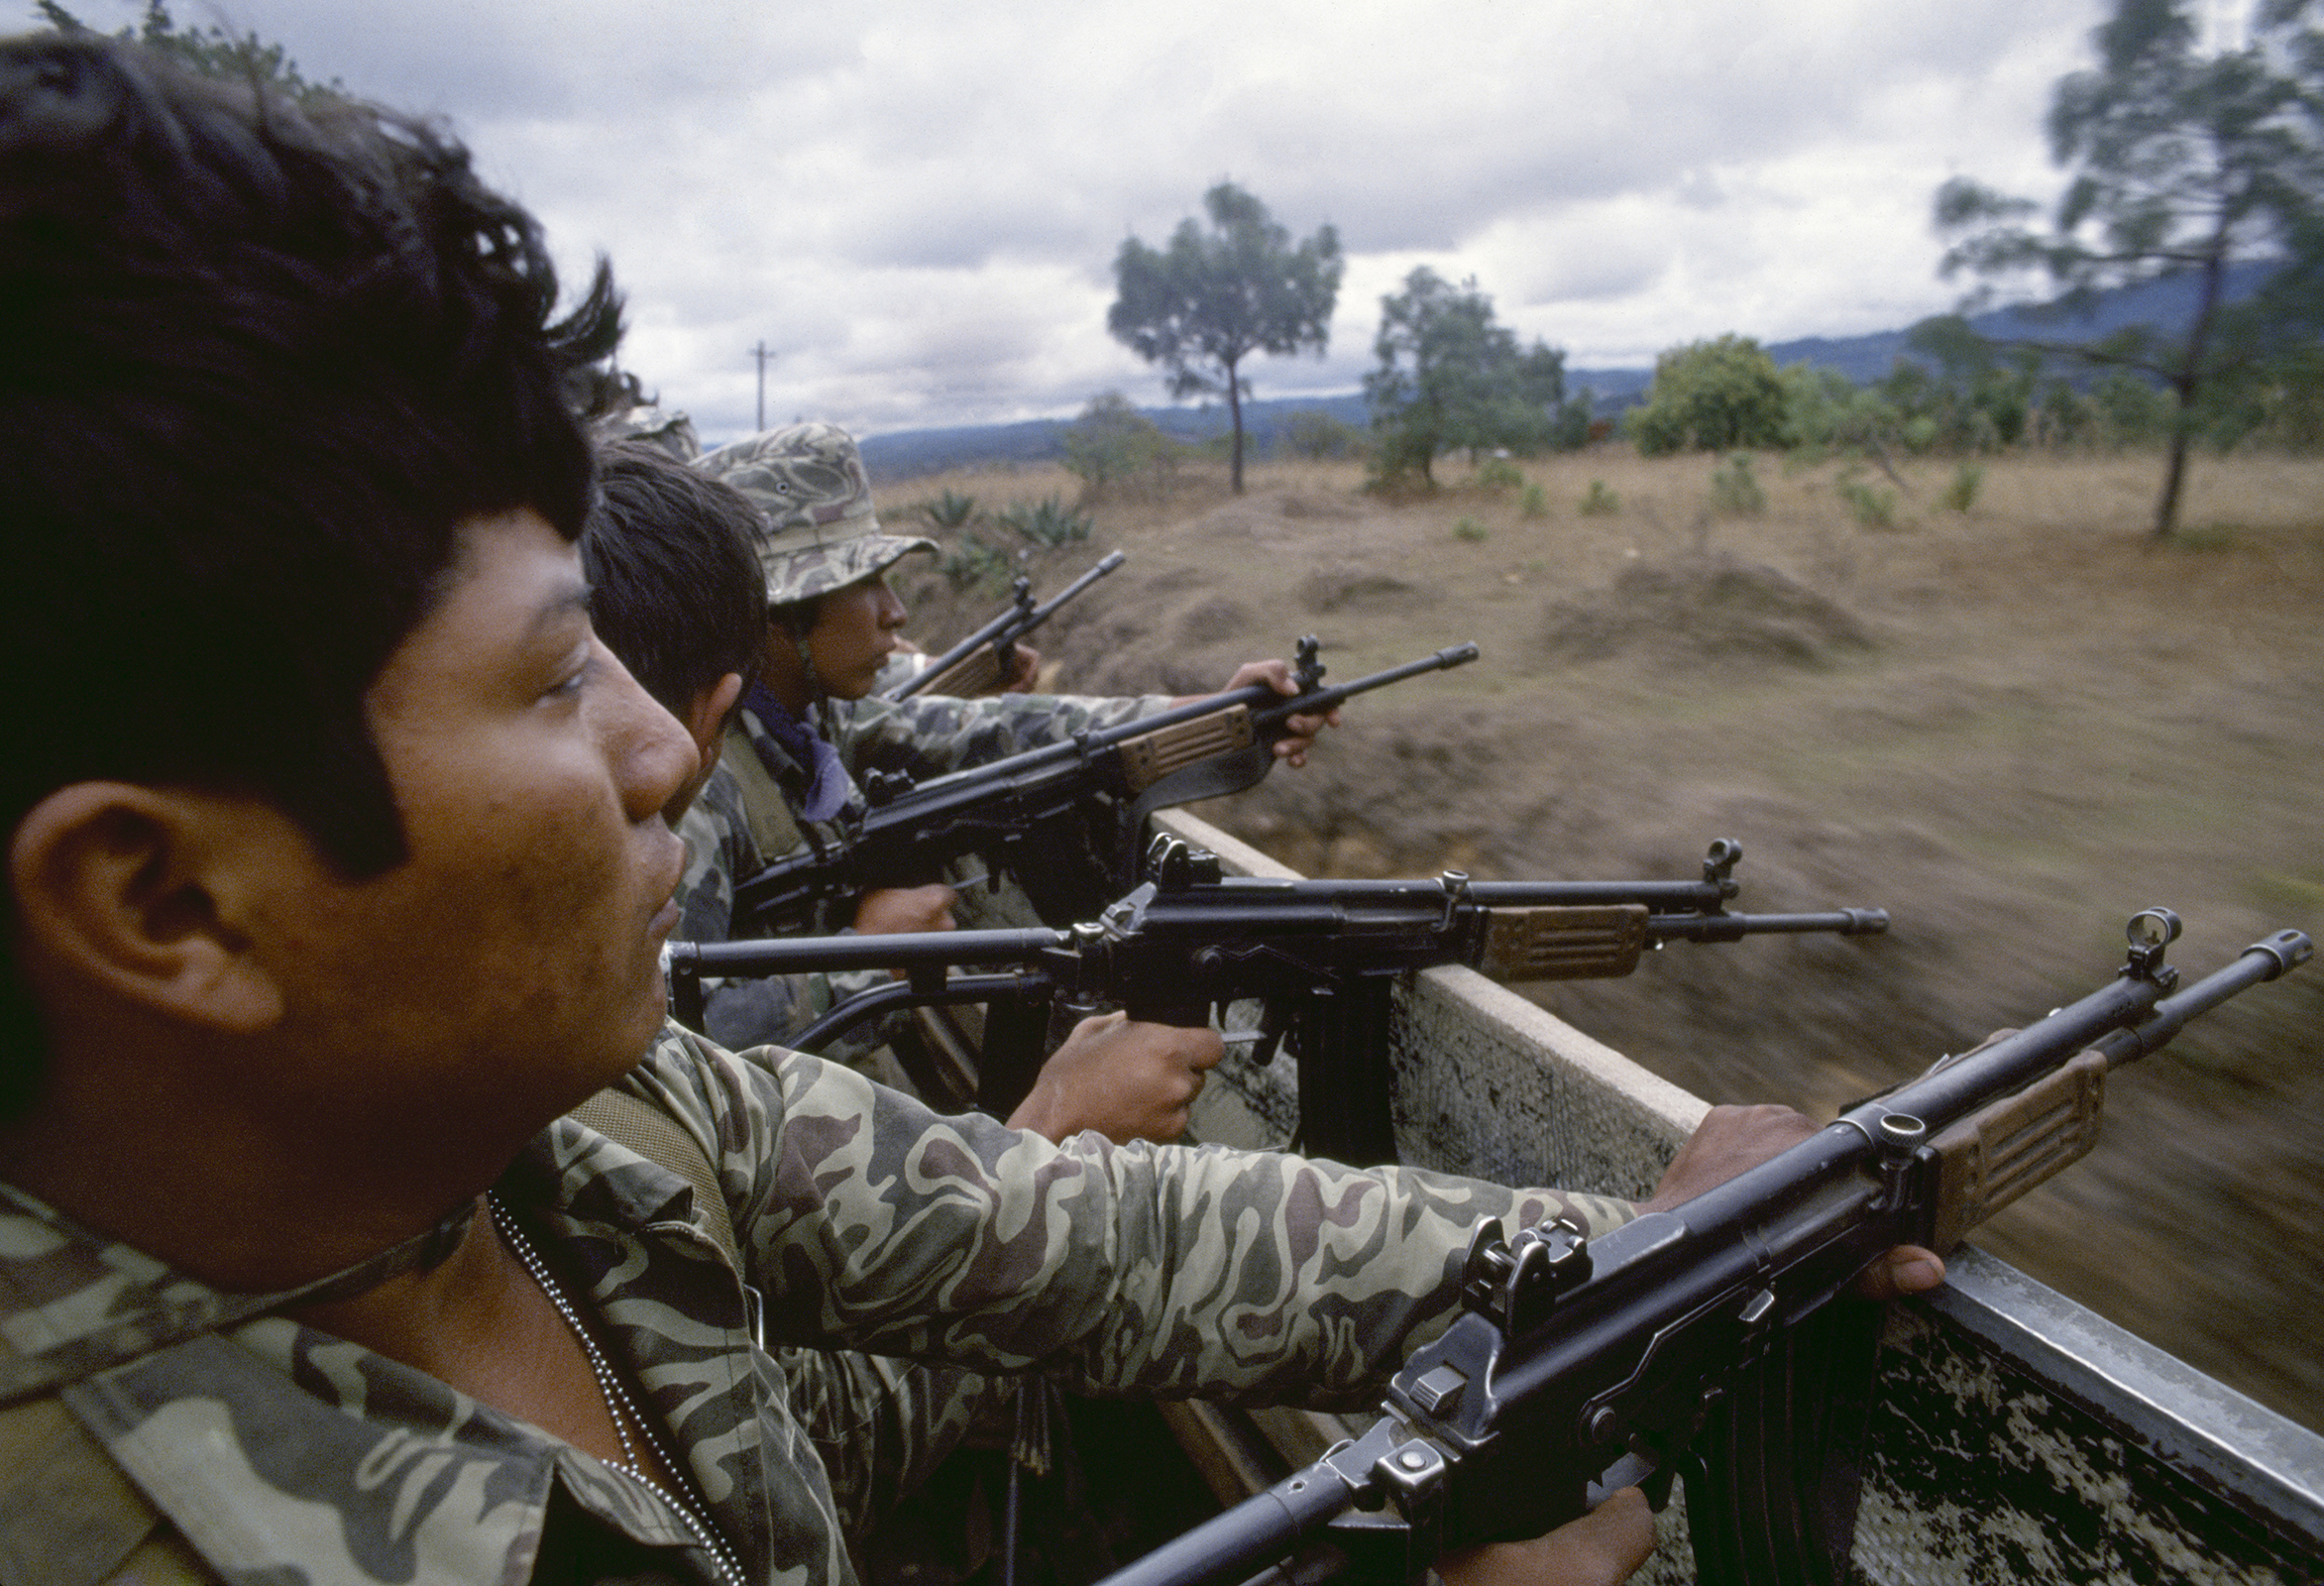 Guatemalan army soldiers armed with Israeli-supplied Galil assault rifles travel in a U.S. manufactured troop transport through possible guerrilla ambush terrain outside of Santa Cruz del Quiché on February 1, 1982. Despite its abysmal human rights record, the Guatemalan state received irregular military aid and support from the United States, along with Israel and Argentina, throughout the armed conflict to fund its oppressive counterinsurgency campaigns.